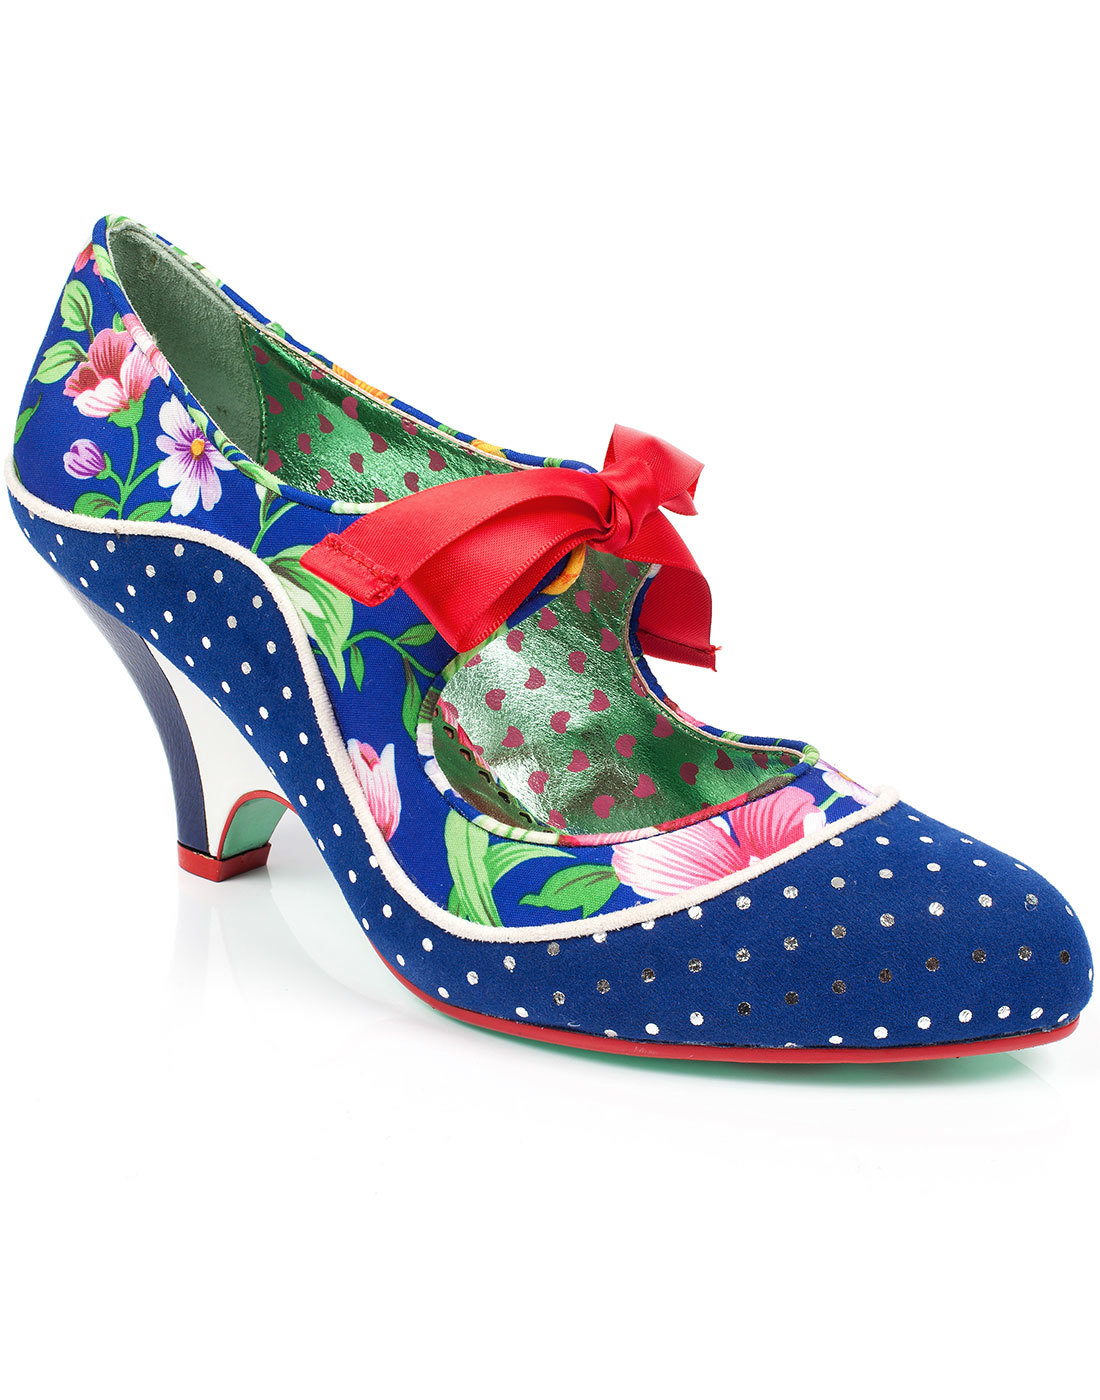 School's Out POETIC LICENCE Polka Dot Floral Heels